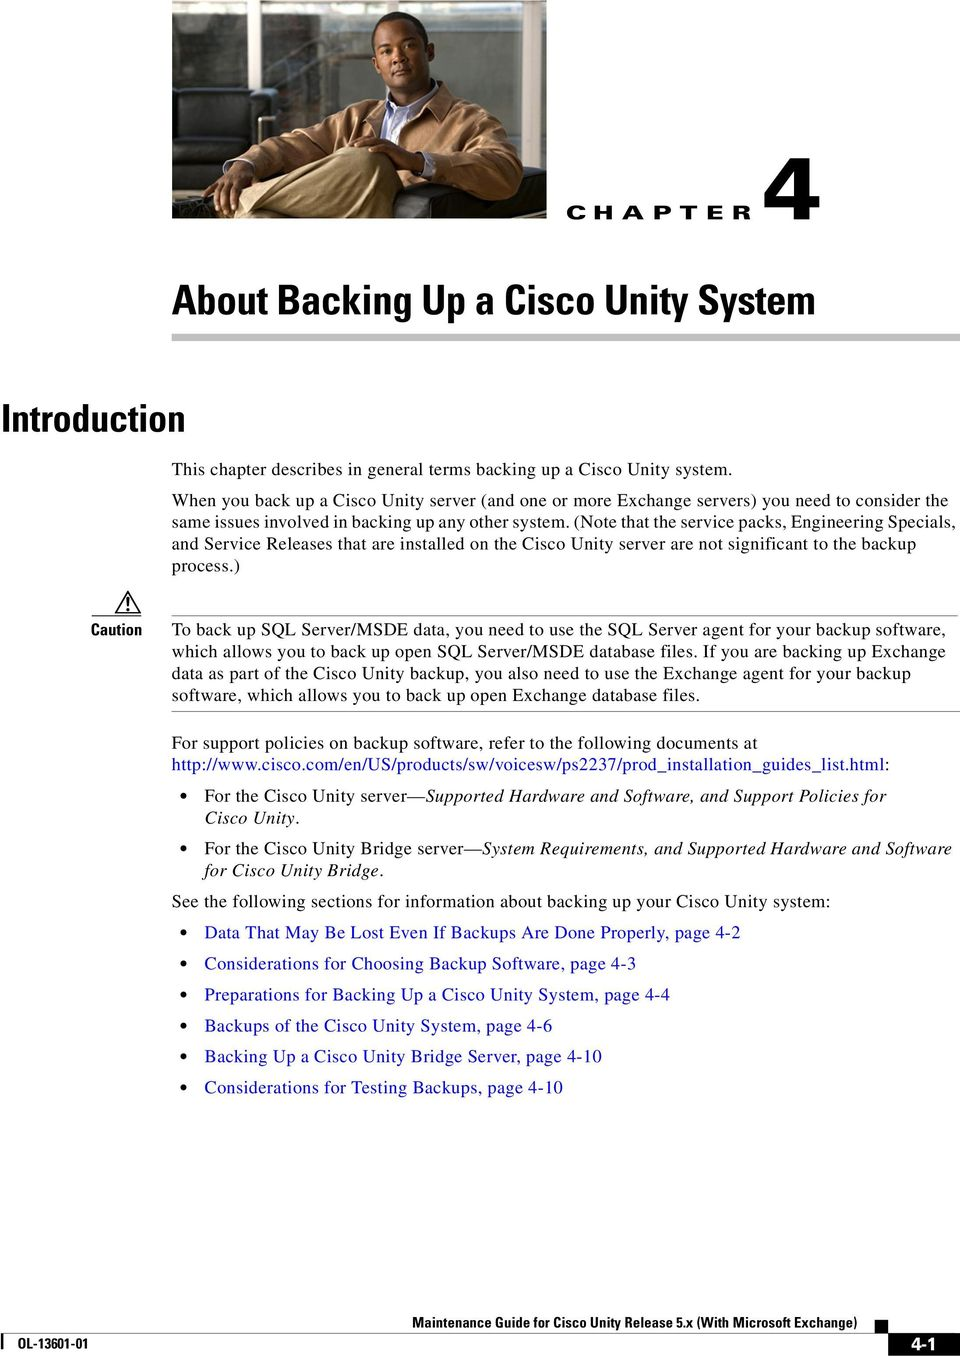 (Note that the service packs, Engineering Specials, and Service Releases that are installed on the Cisco Unity server are not significant to the backup process.